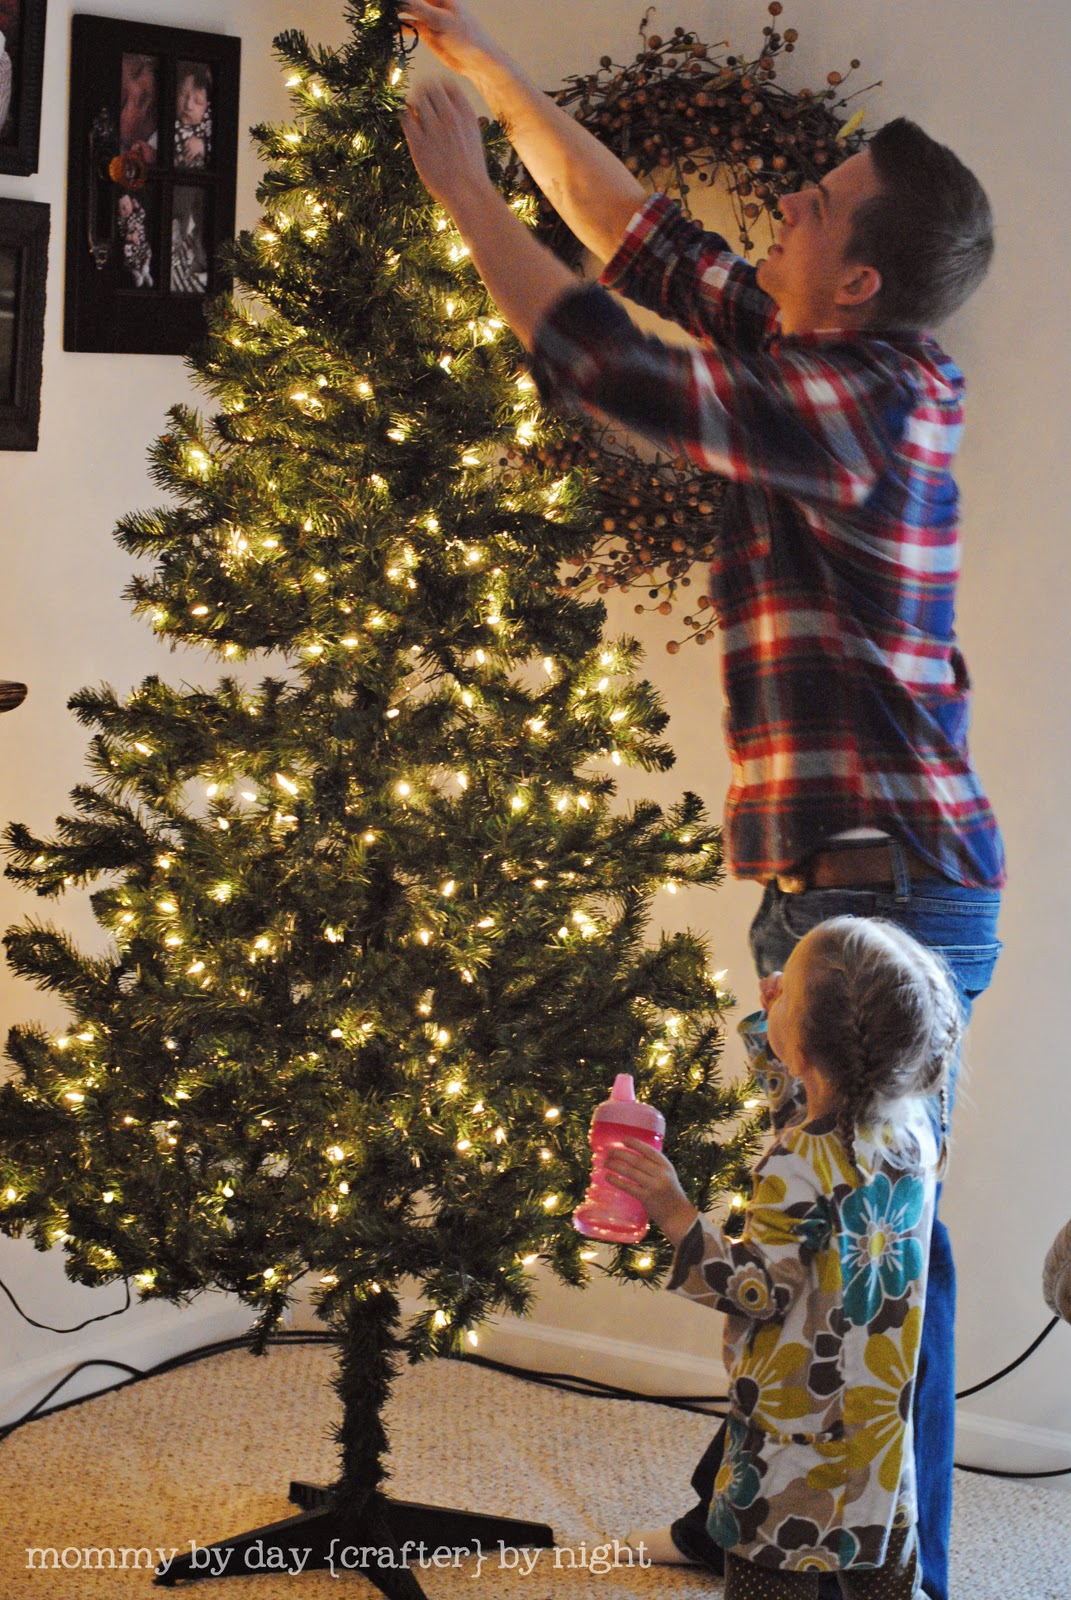 mommy by day crafter by night how to decorate your christmas tree on a budget - When Can I Put Up Christmas Decorations